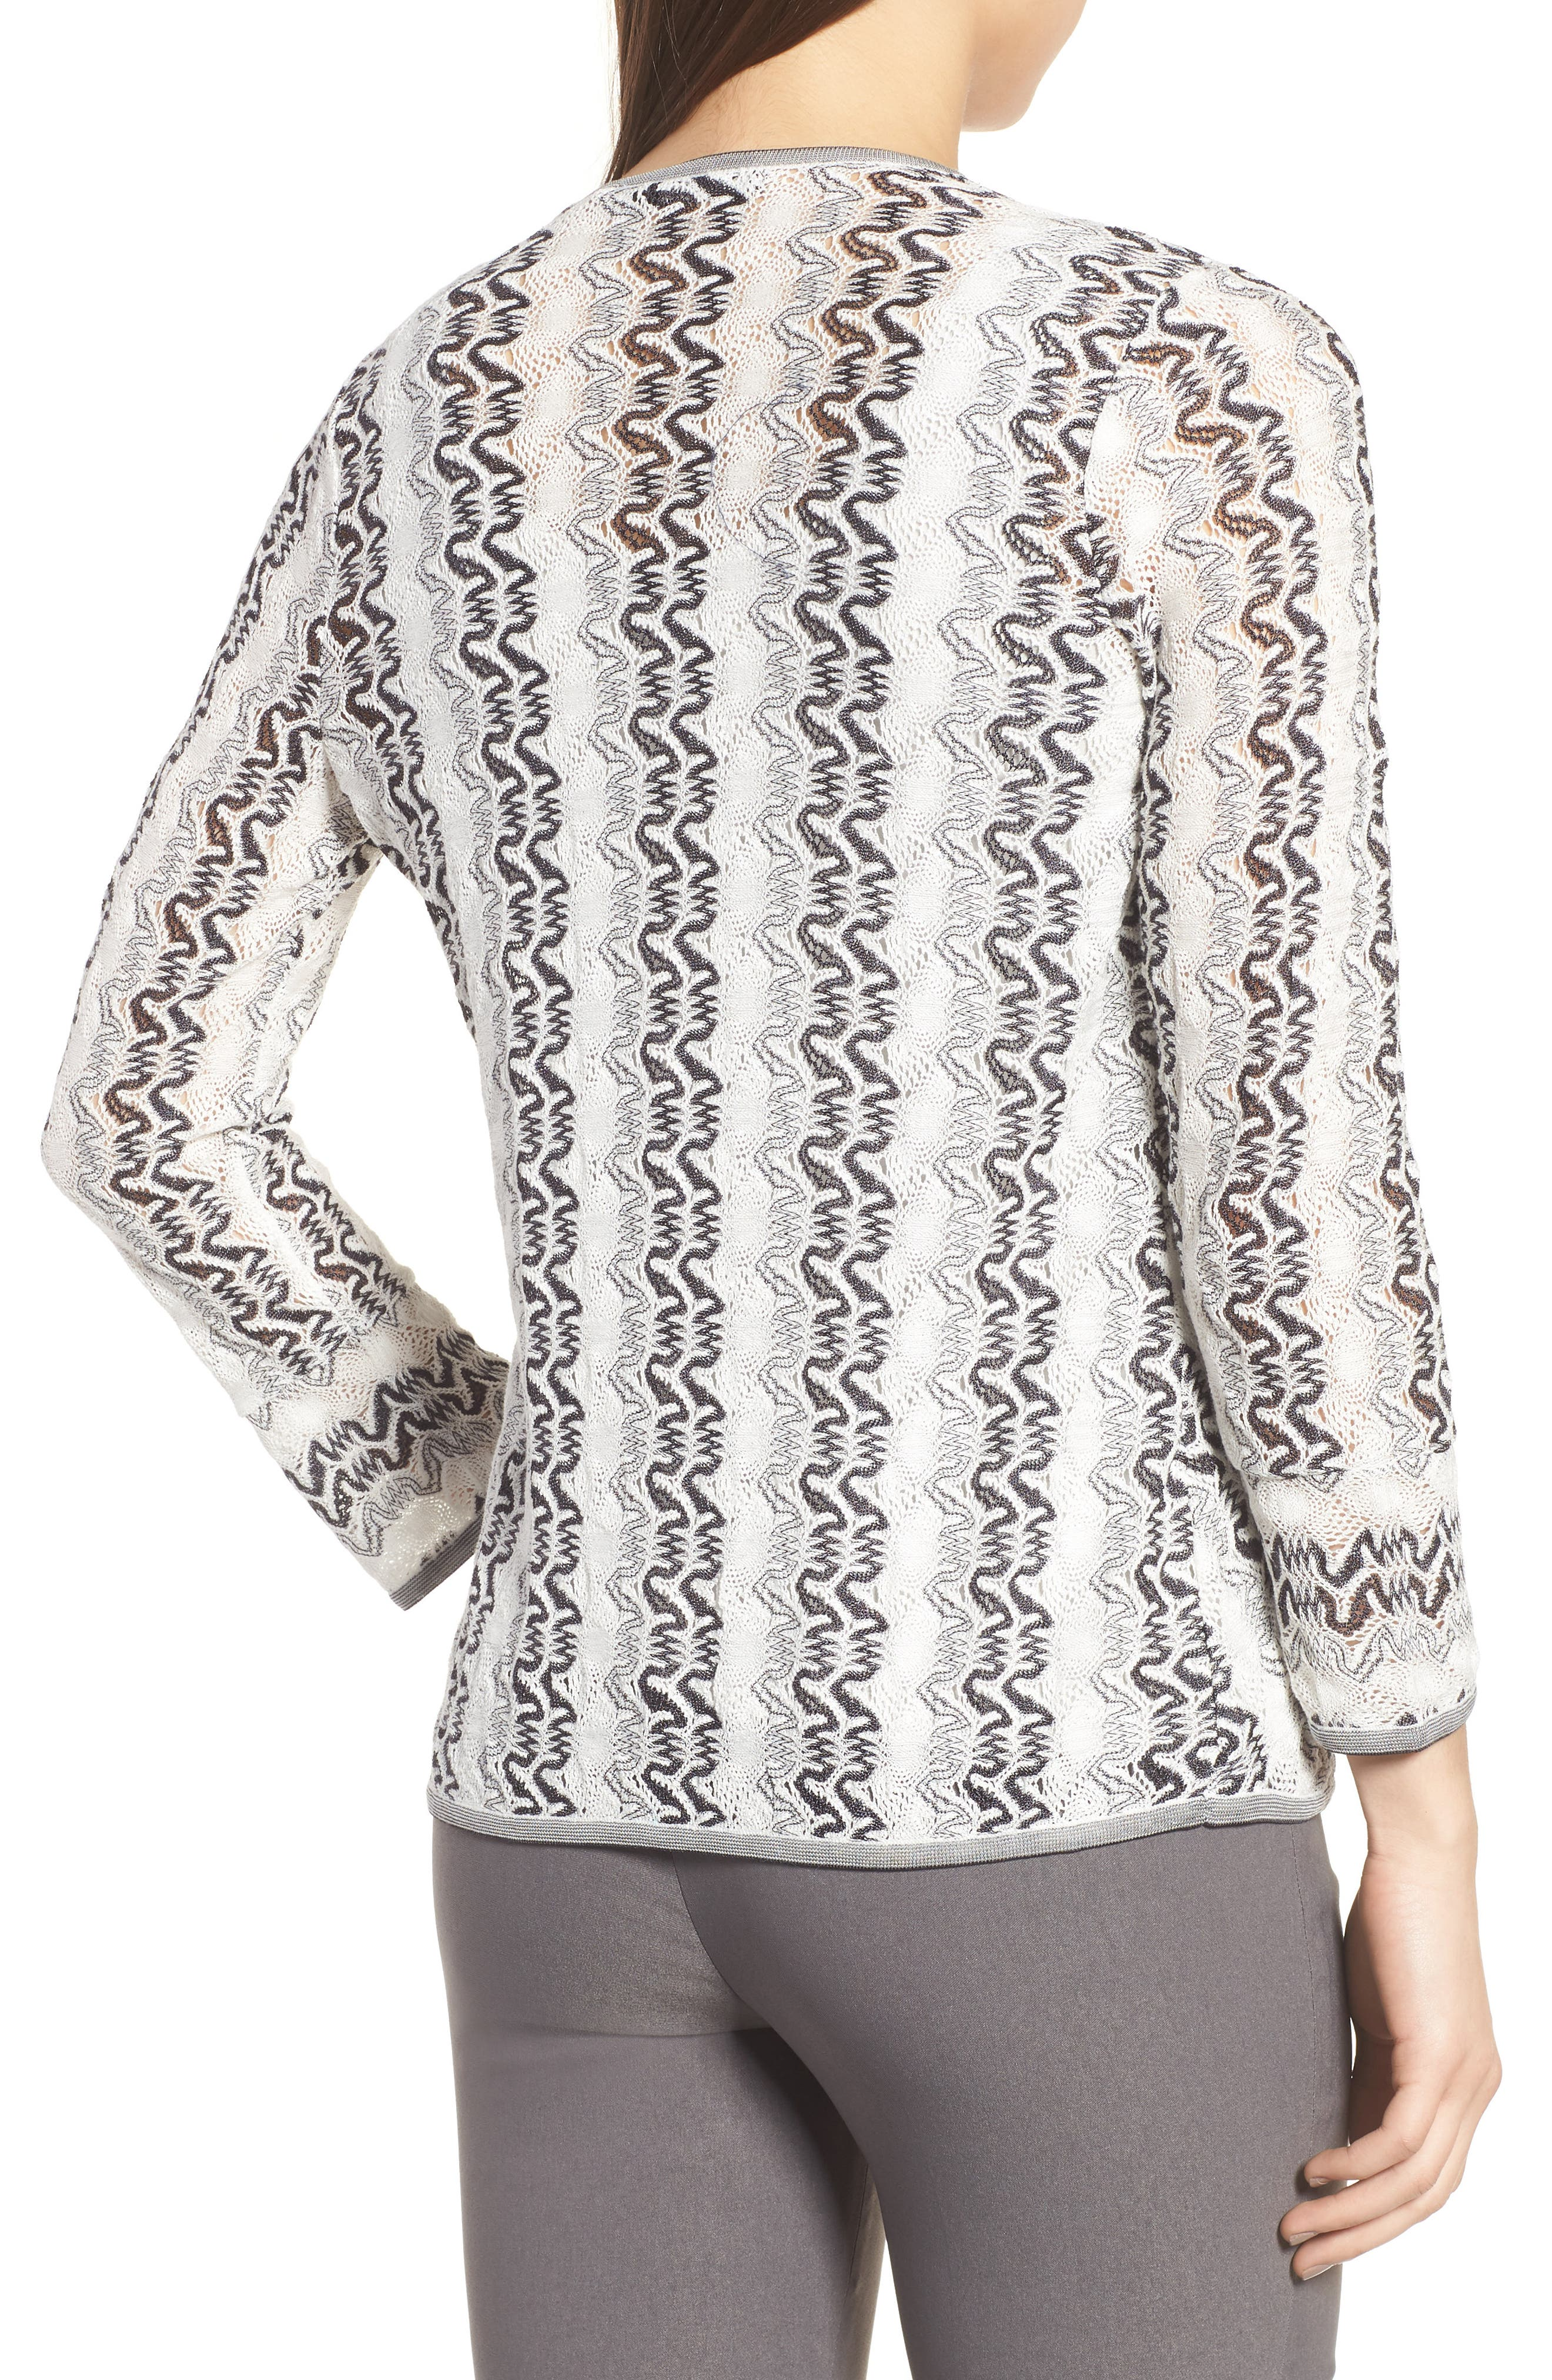 Covered Up 4-Way Convertible Cardigan,                             Alternate thumbnail 2, color,                             Multi